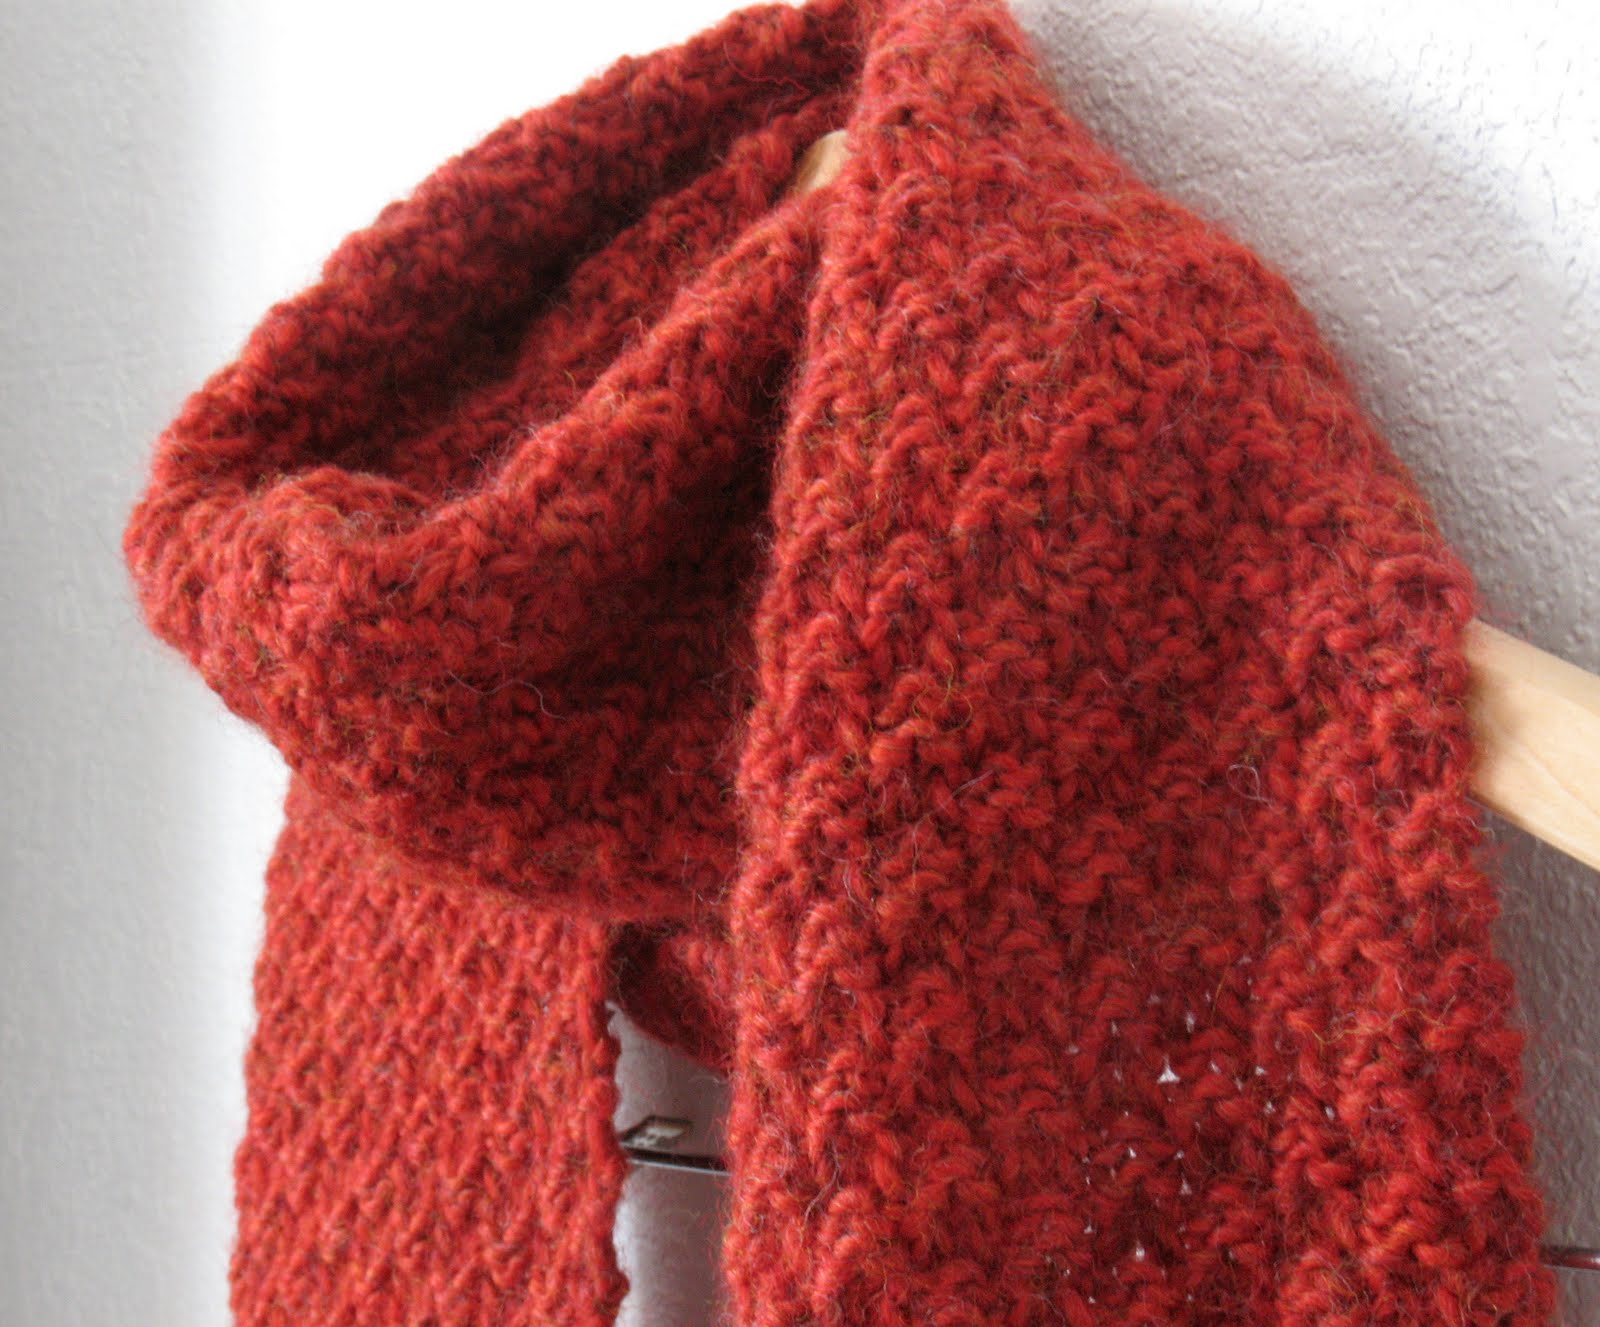 knit, too!: Red Scarf Project + a pattern!